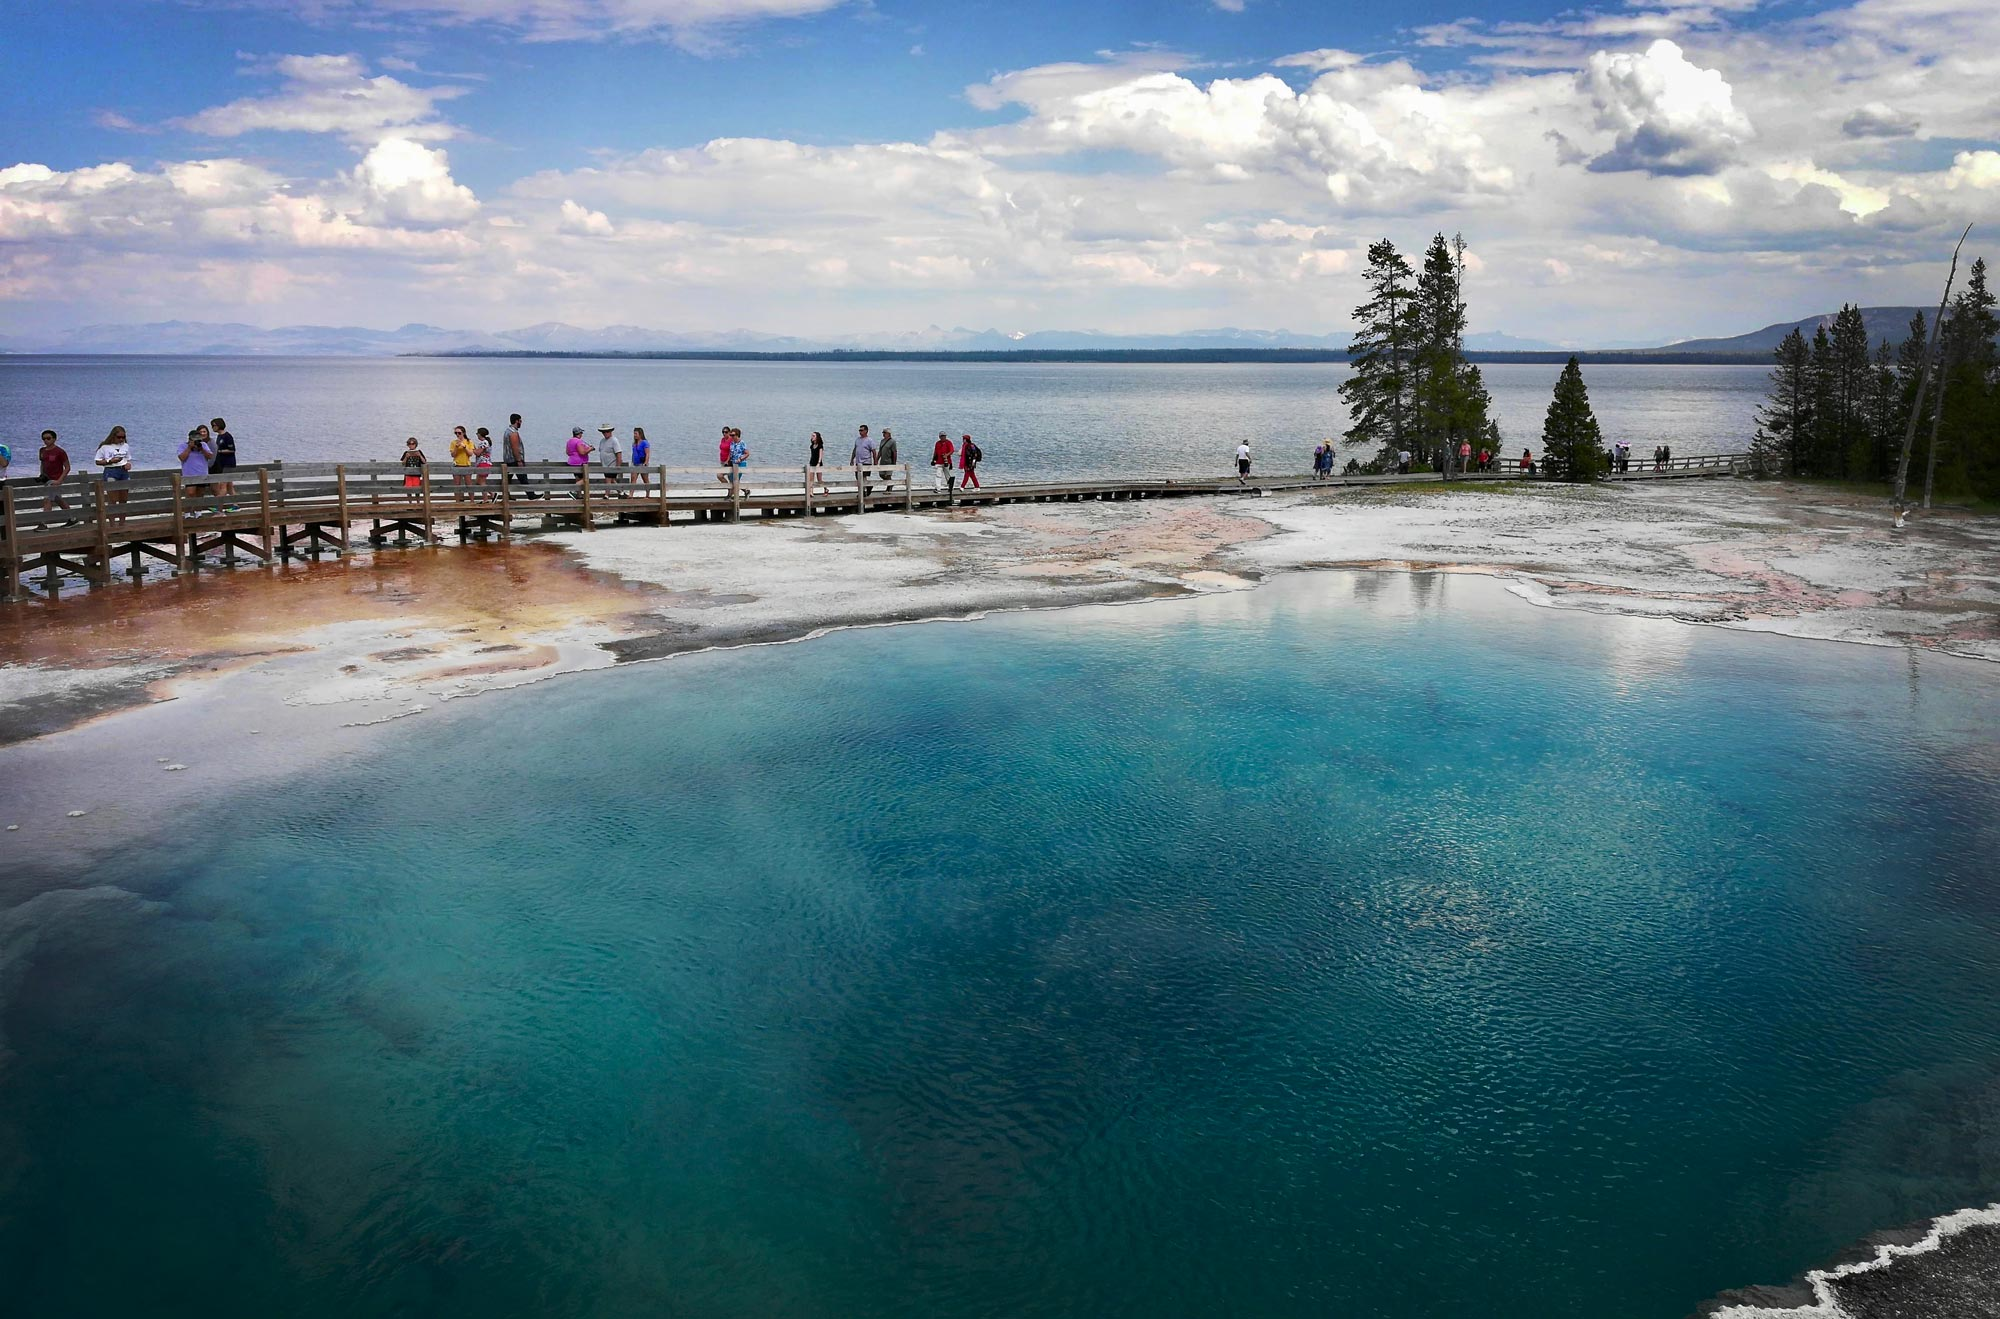 Abyss Pool at West Thumb Geyser in Yellowstone National Park